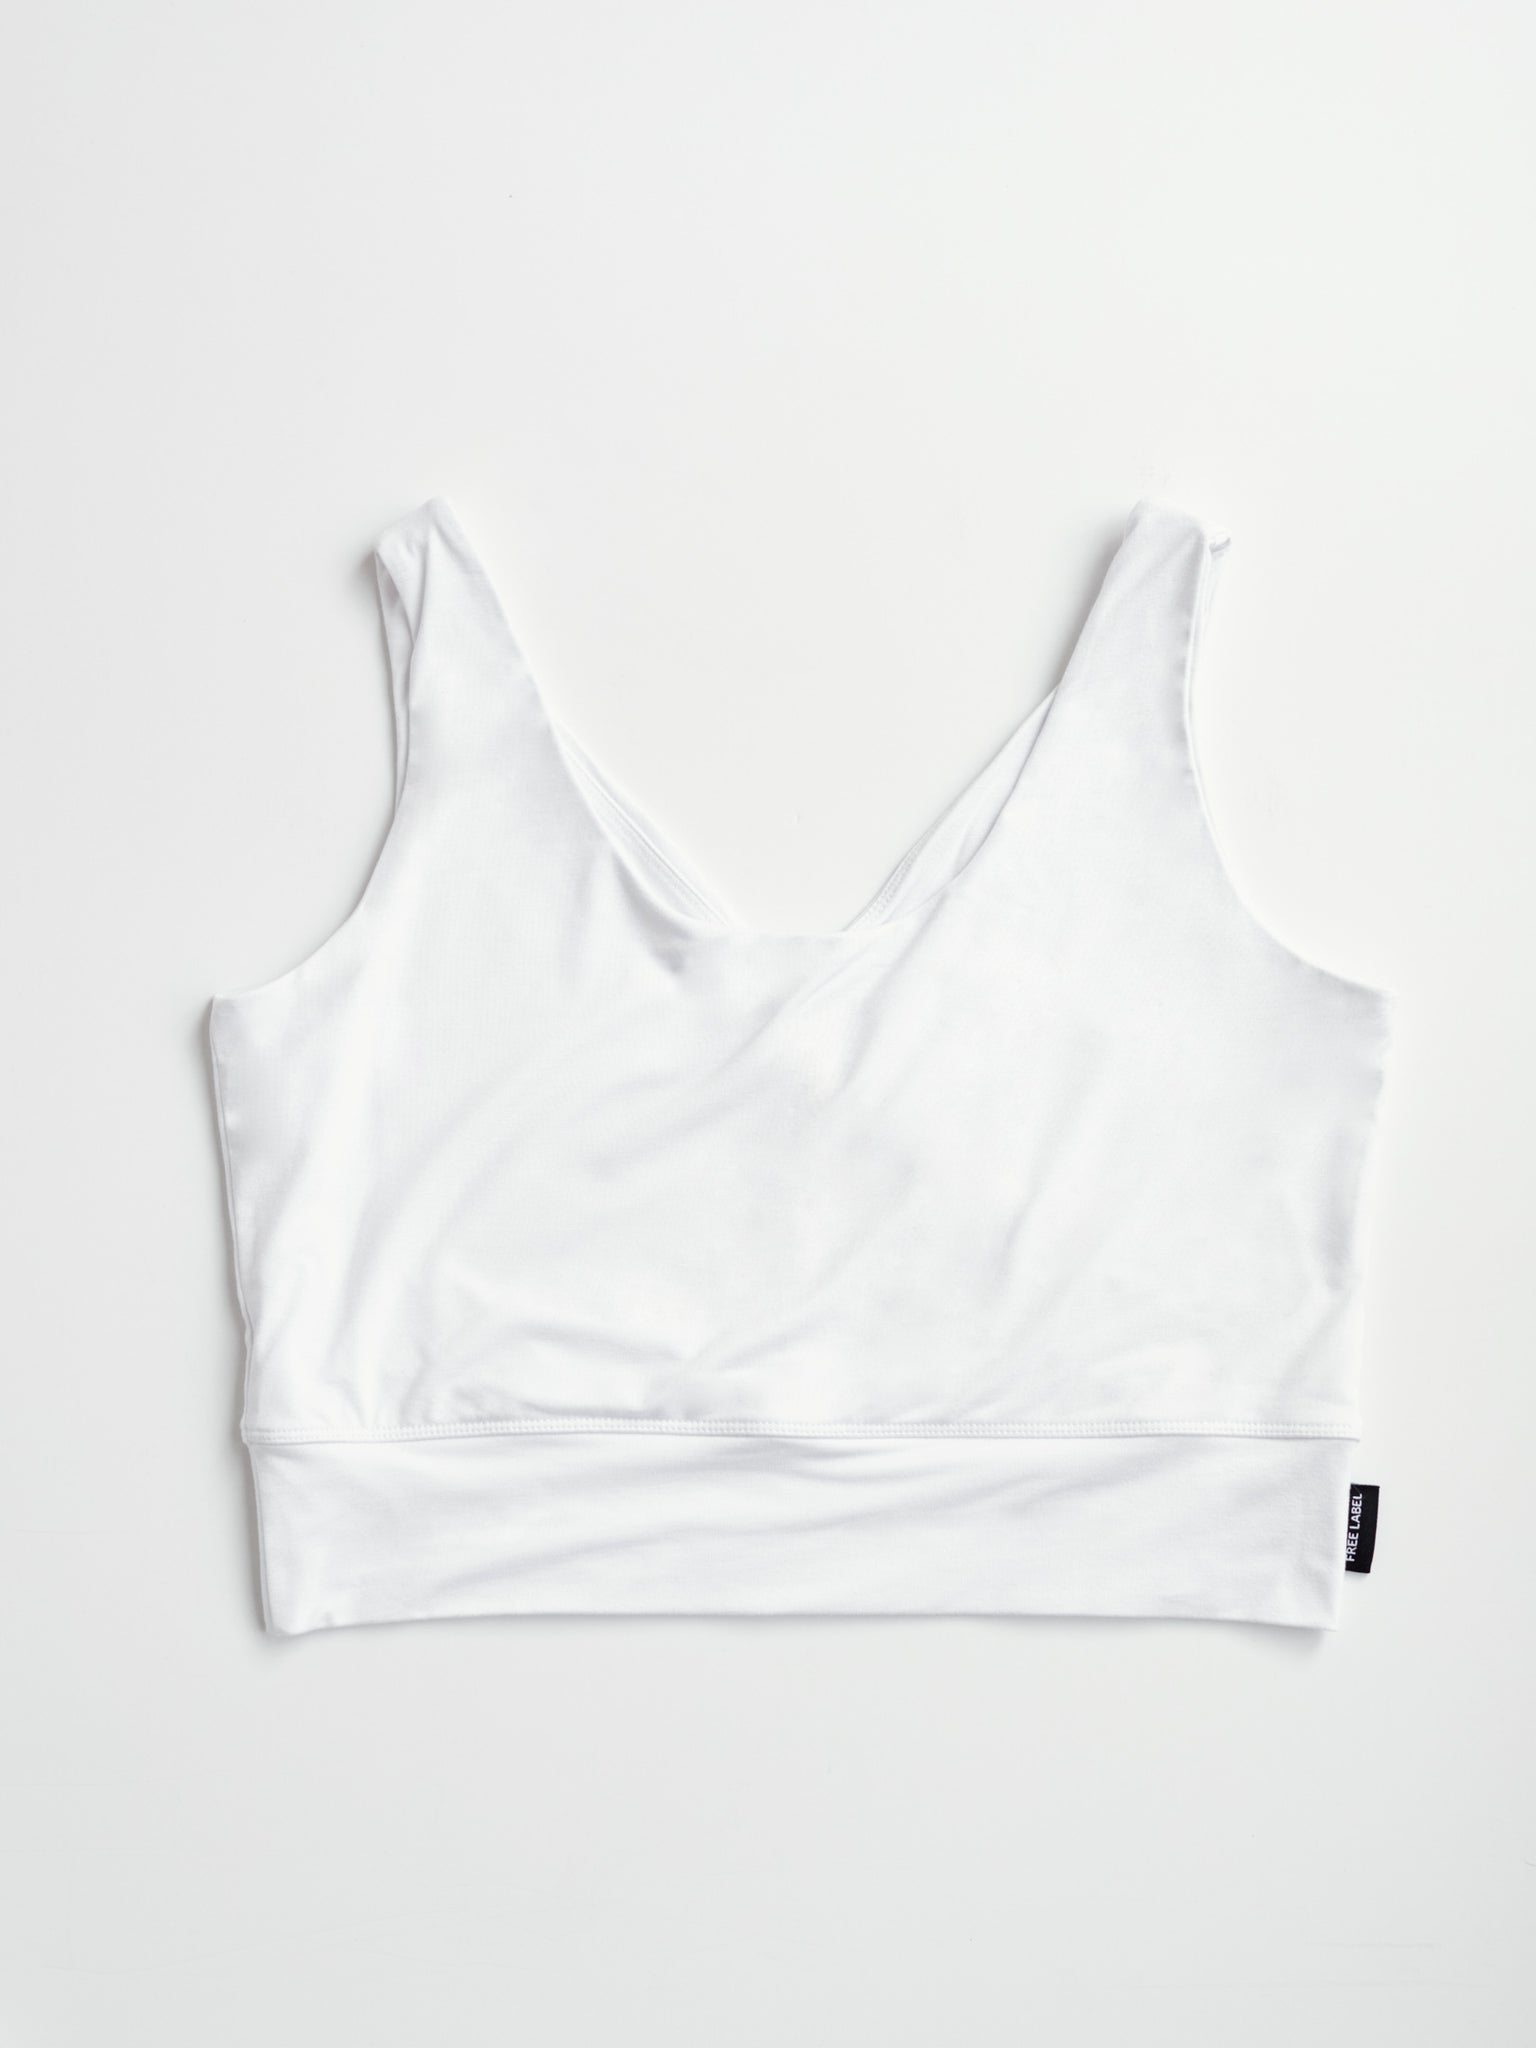 Free Label White Becky Bra